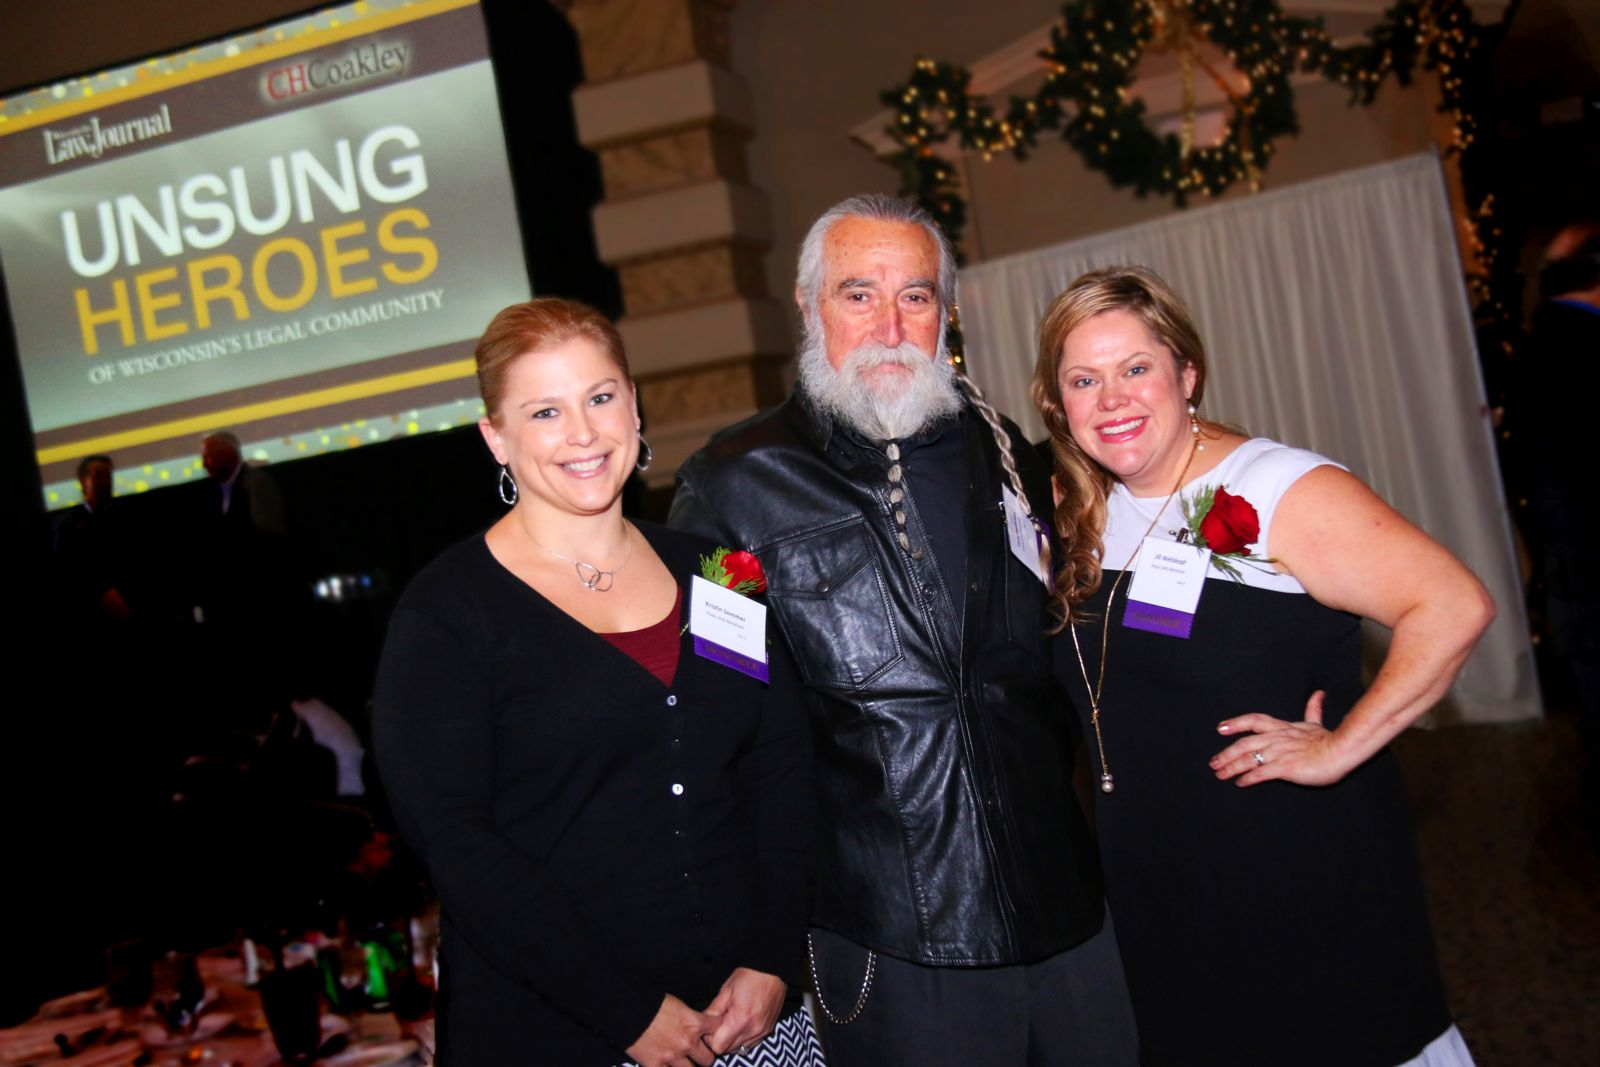 Jill, Tony and Kristin at Unsung Heroes event